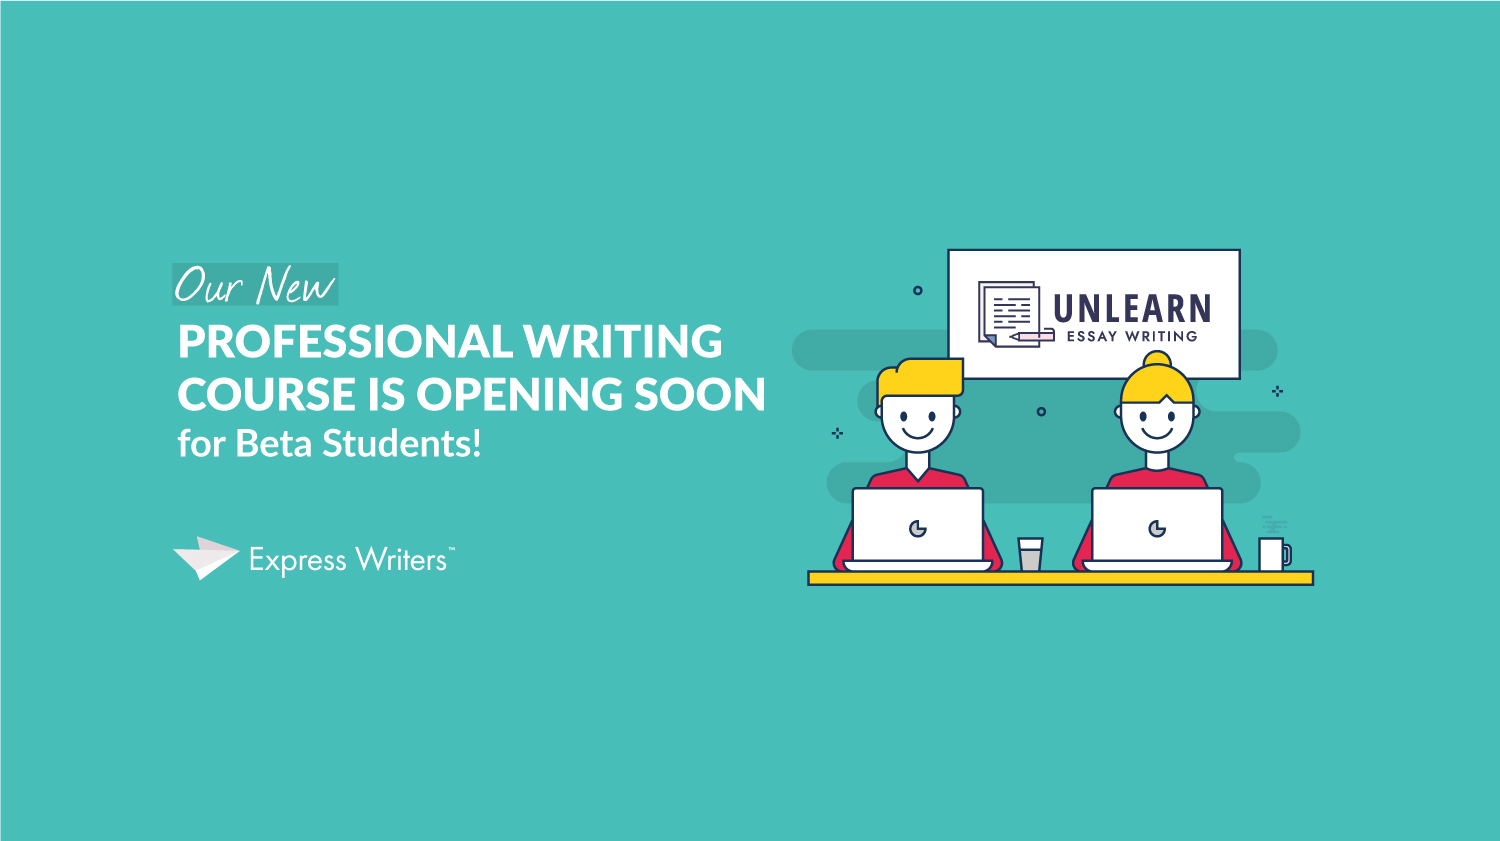 Unlearn Essay Writing is opening soon